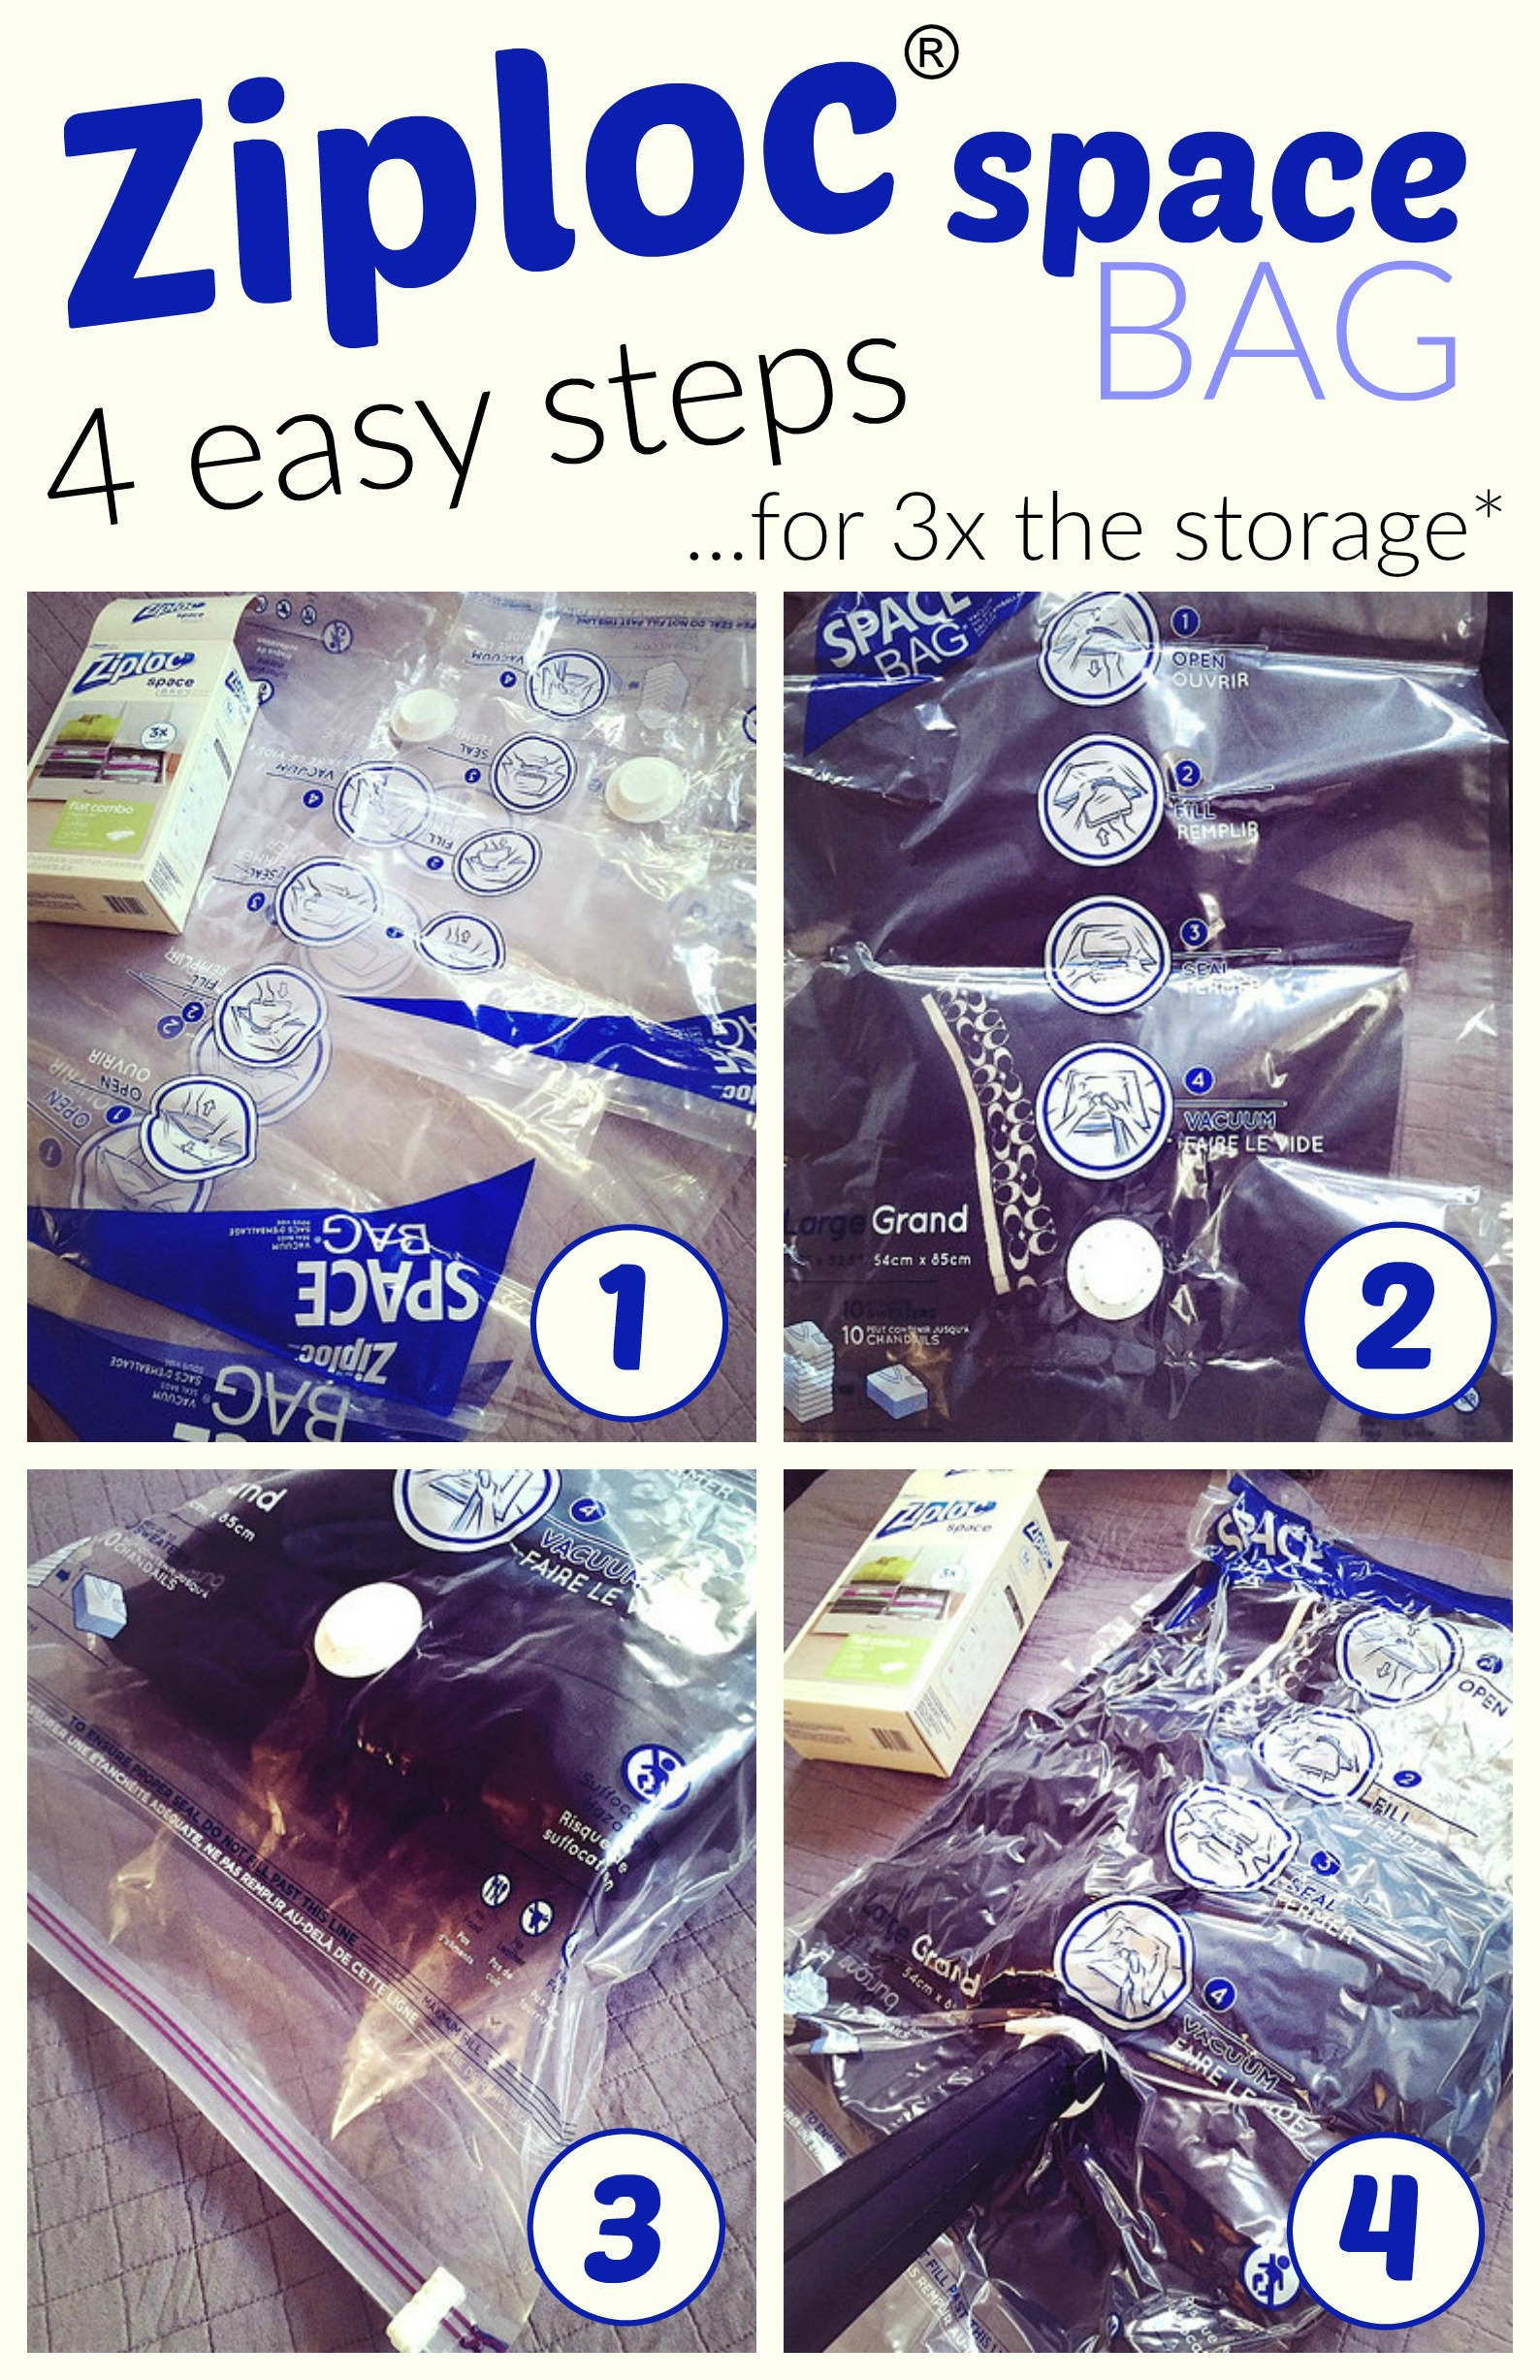 Ziploc Space Bags provide you 3x the storage space